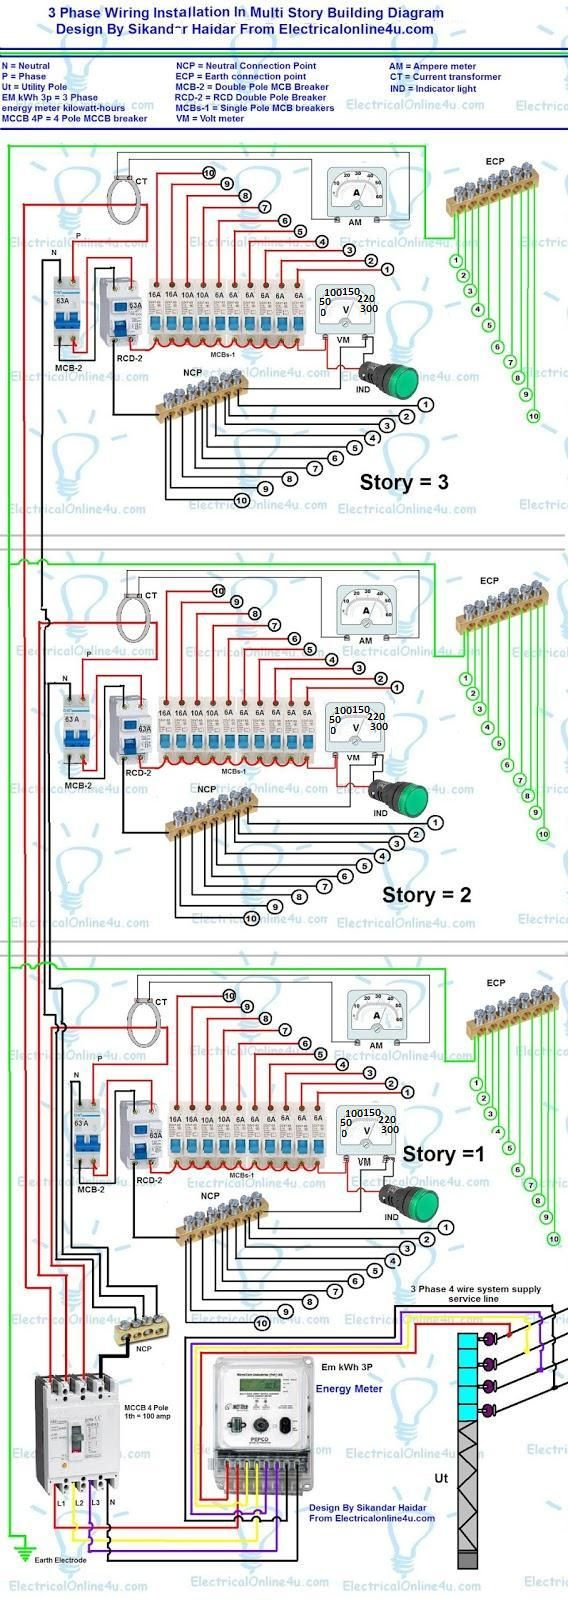 medium resolution of 3 phase wiring installation diagram 3 phase wiring installation diagram basic electrical